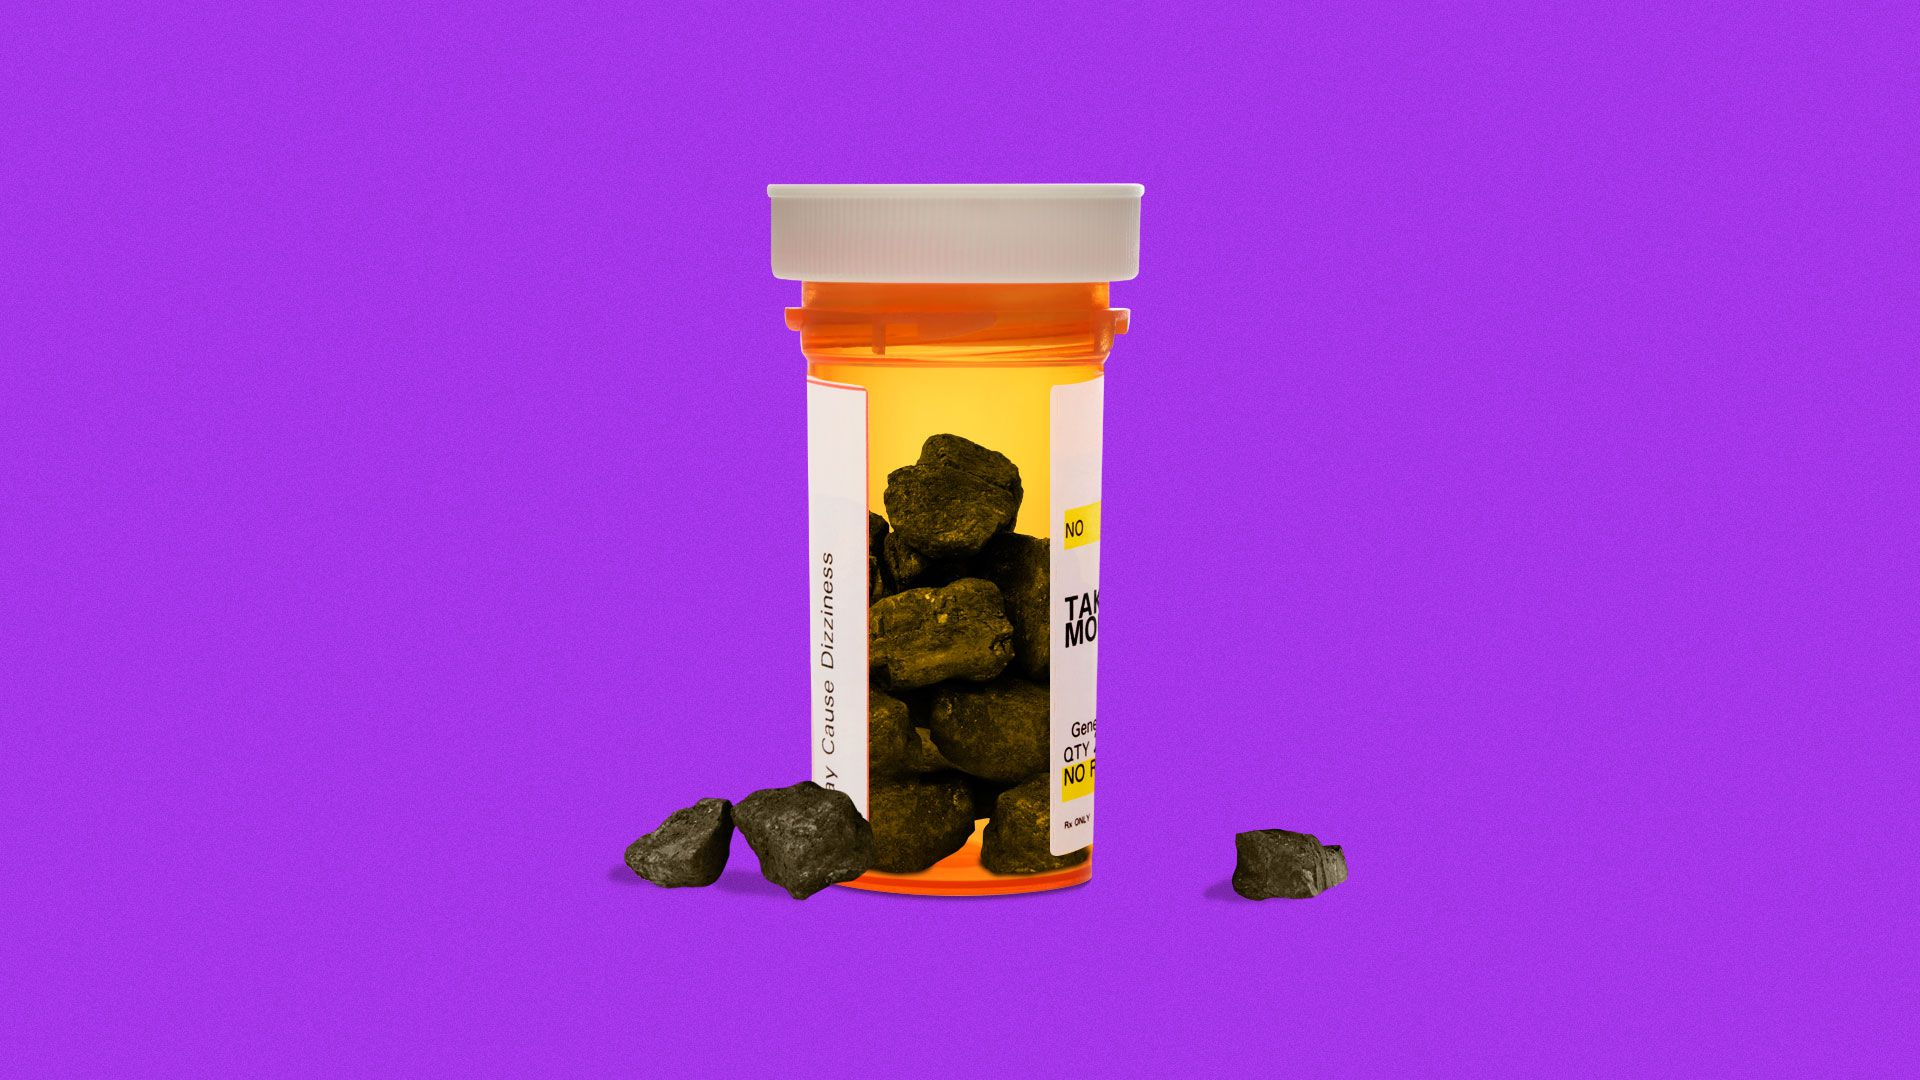 Illustration of lumps of coal in a pill bottle.